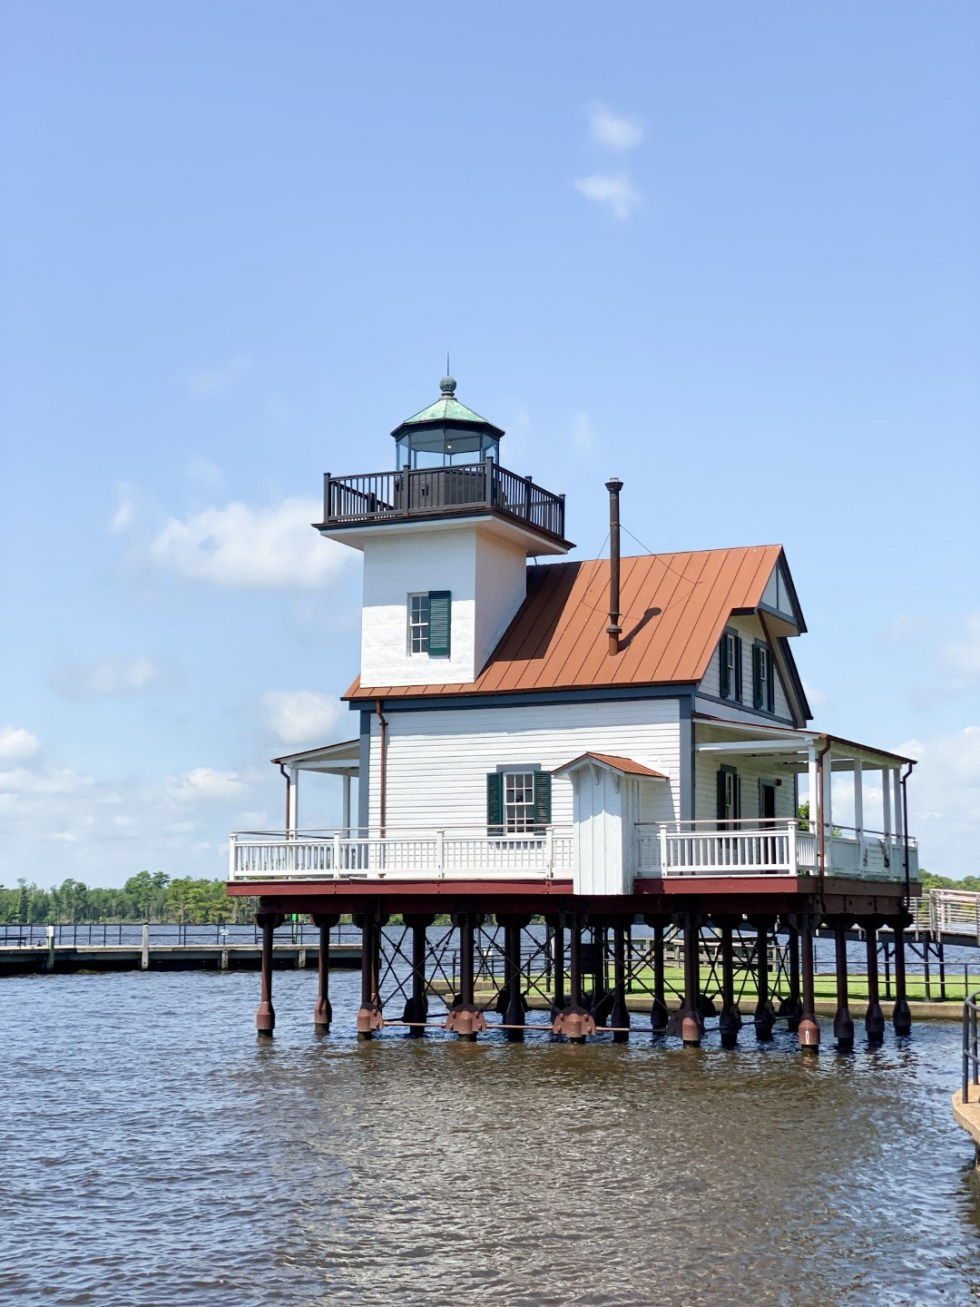 Top 10 Best Things to Do in Edenton, NC: A Complete Travel Guide - I'm Fixin' To - @imfixintoblog | Edenton Travel Guide by popular NC travel guid, I'm Fixin' To: image of the Roanoke River Lighthouse.